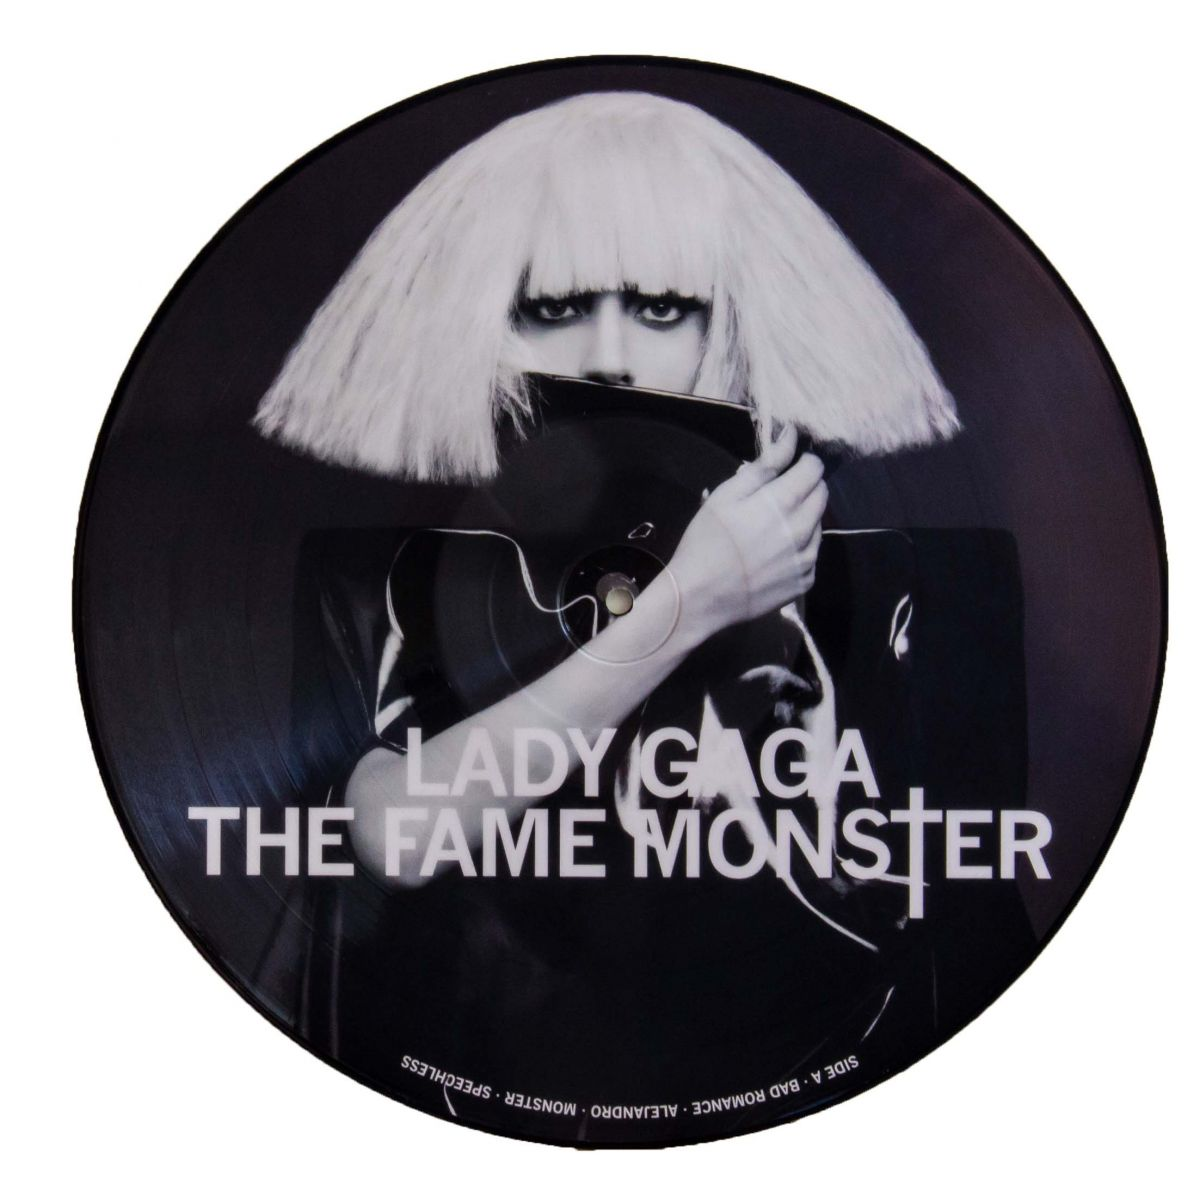 Lp Vinil Picture Disc Lady Gaga The Fame Monster